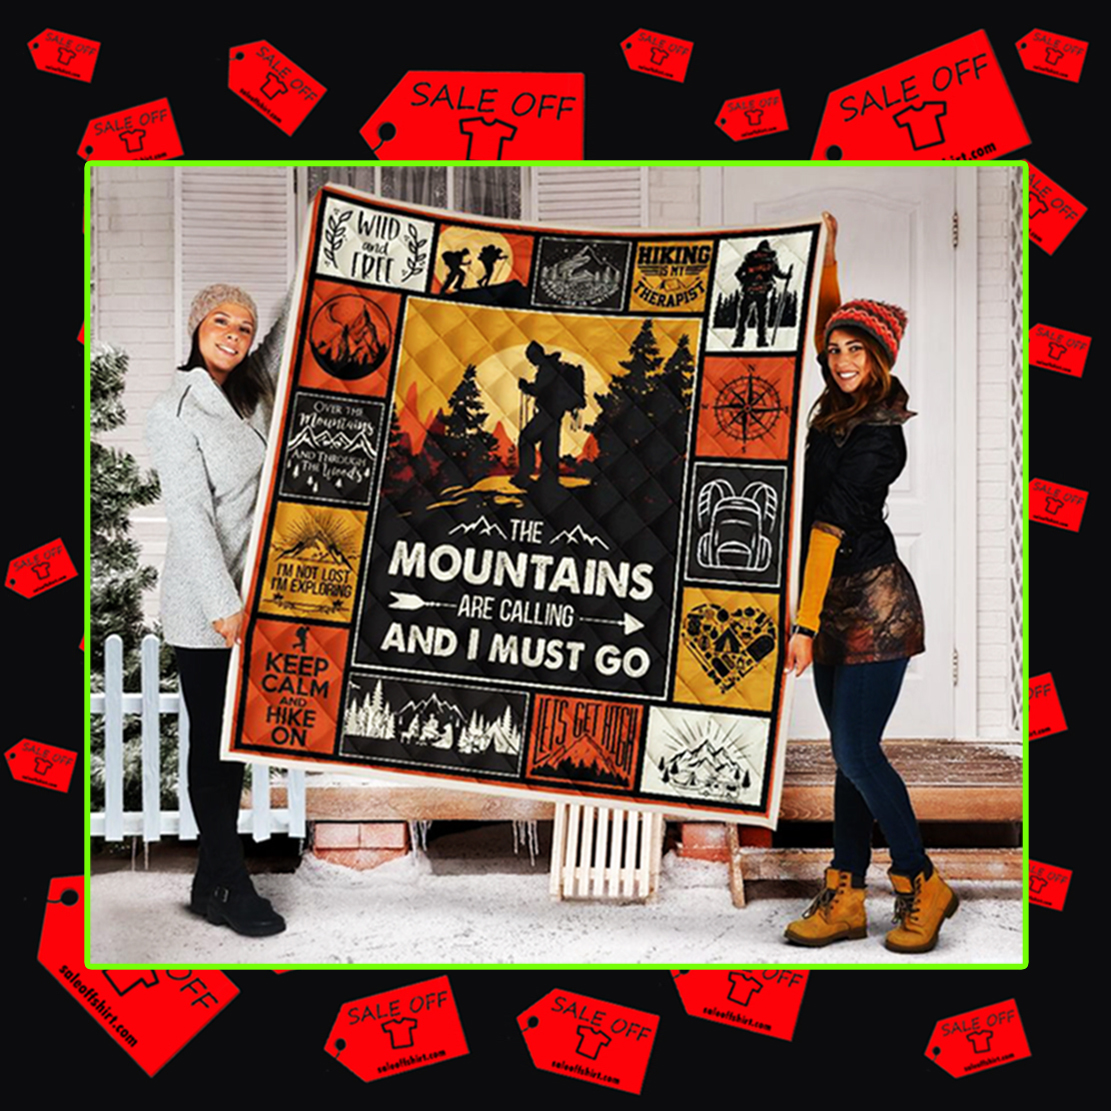 Hiking The mountains are calling and I must go quilt blanket